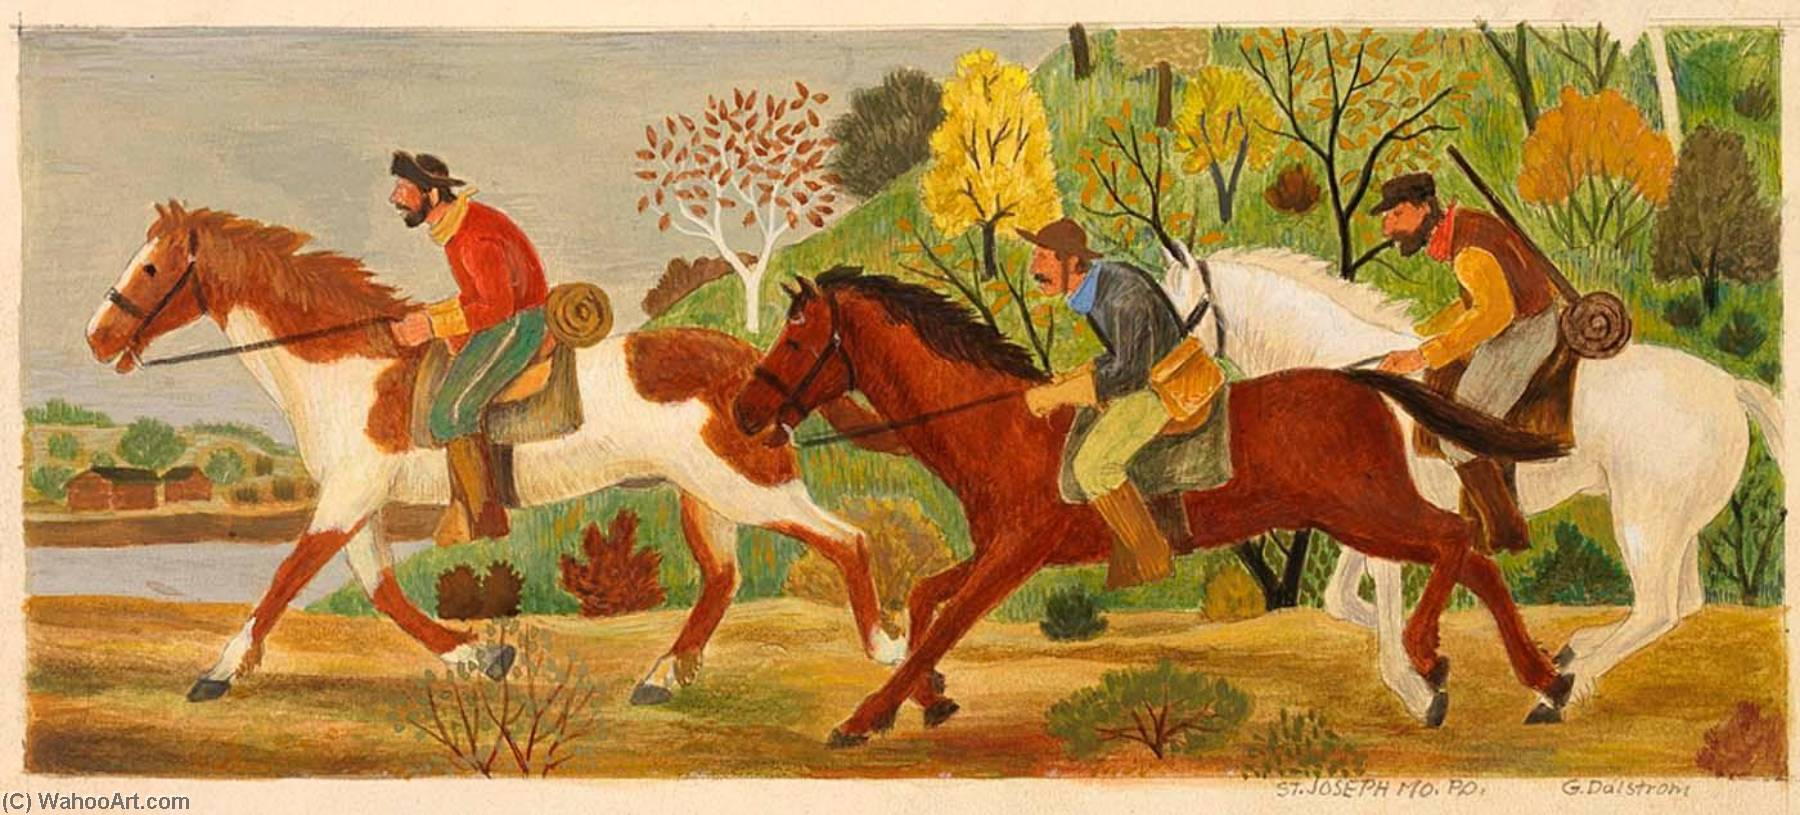 Pony Express (mural study, St. Joseph, Missouri Post Office and Courthouse), 1941 by Gustaf Oscar Dalström | Museum Quality Reproductions | WahooArt.com